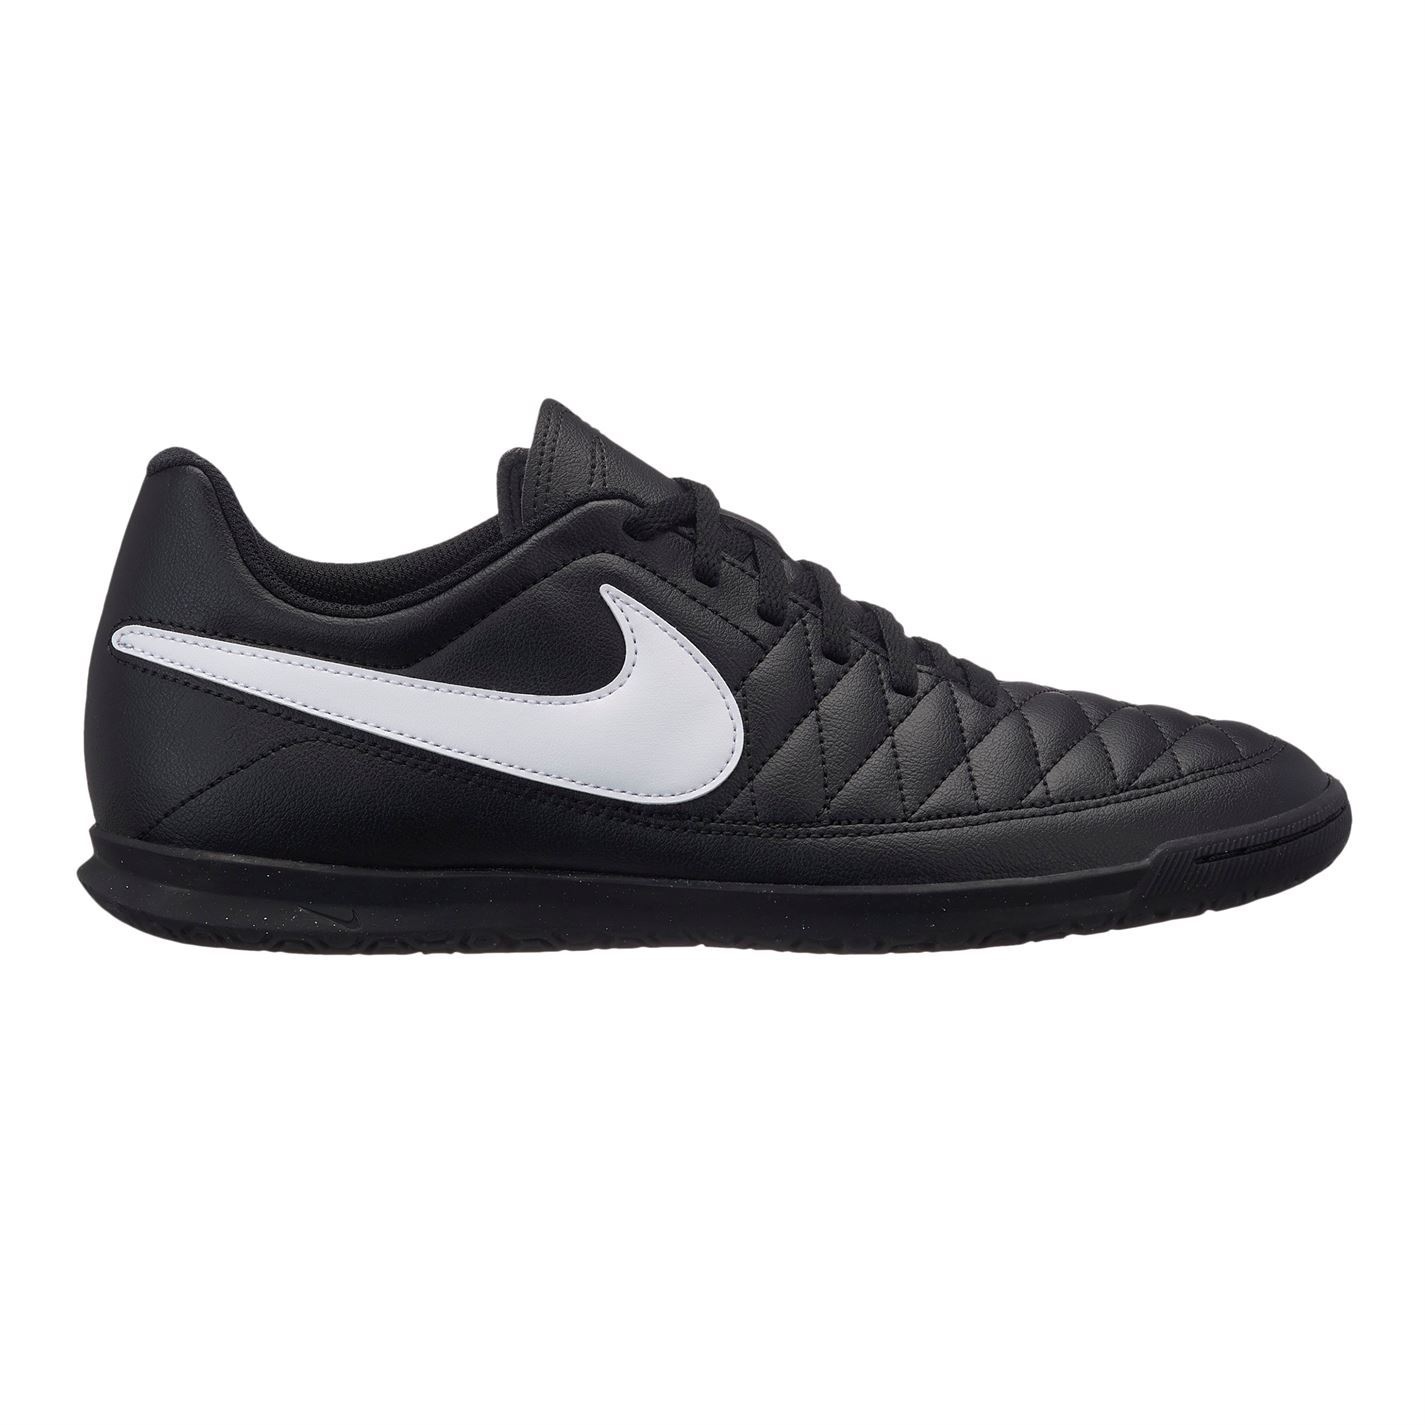 Nike-majestry-Indoor-Football-Baskets-Pour-Homme-Football-Futsal-Chaussures-Baskets-Bottes miniature 22